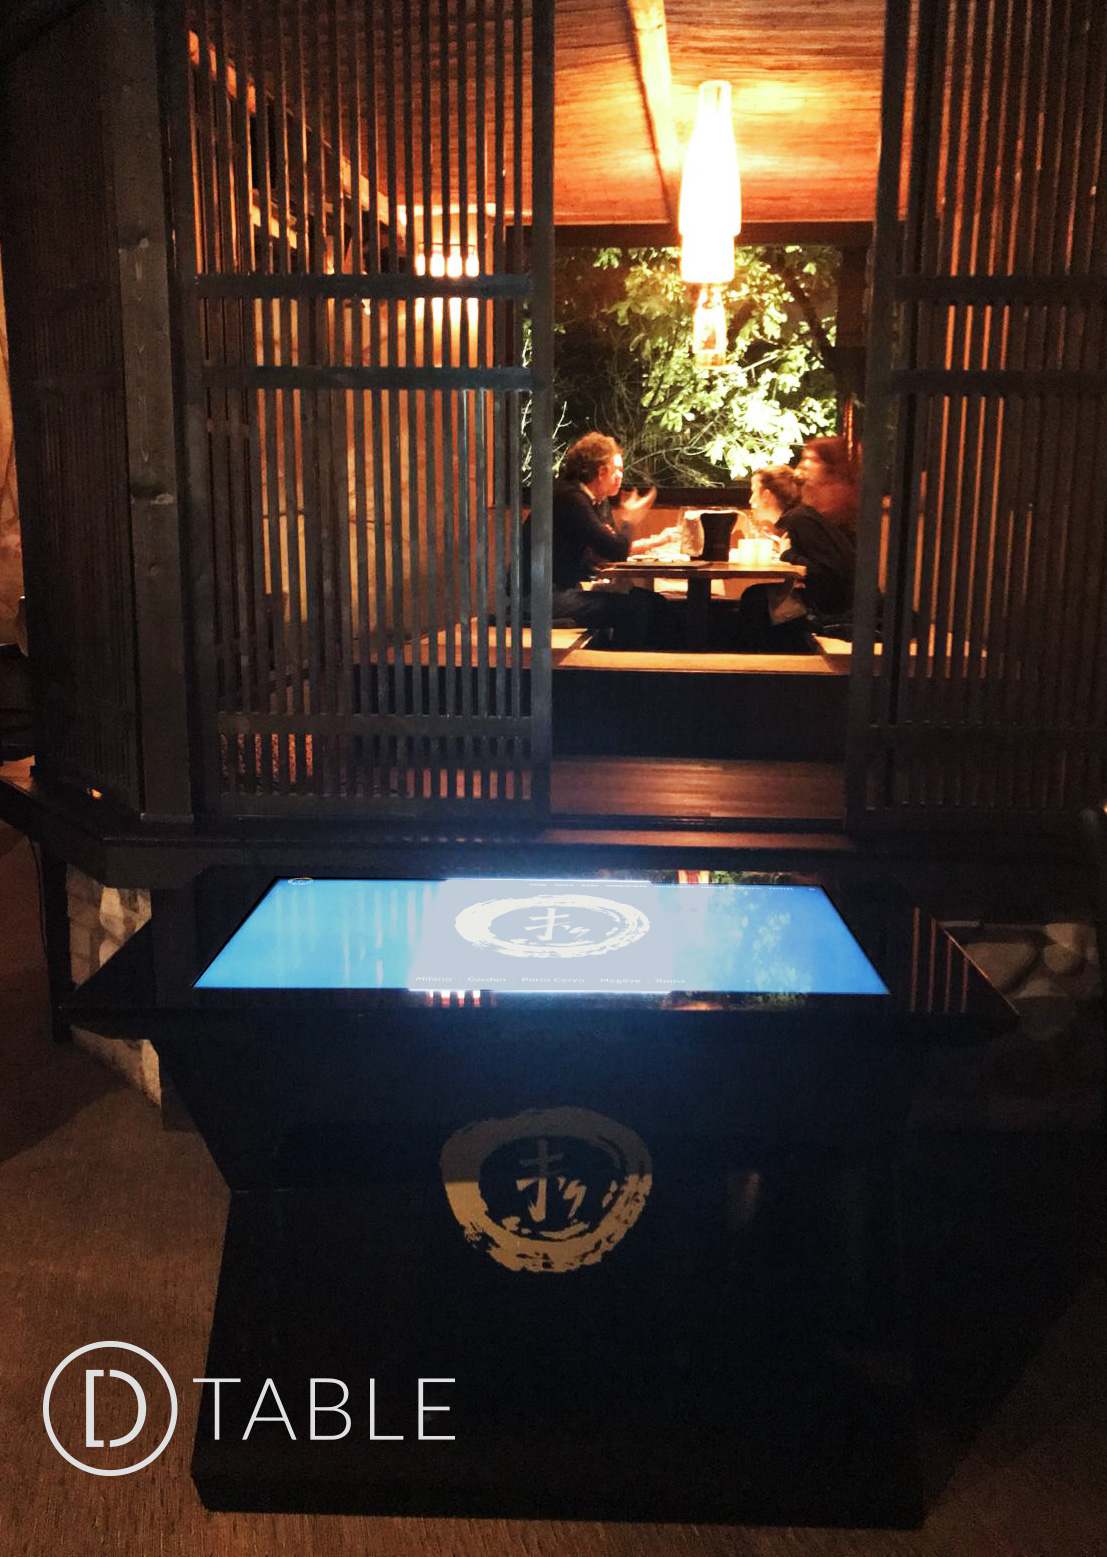 D-Table at Finger's